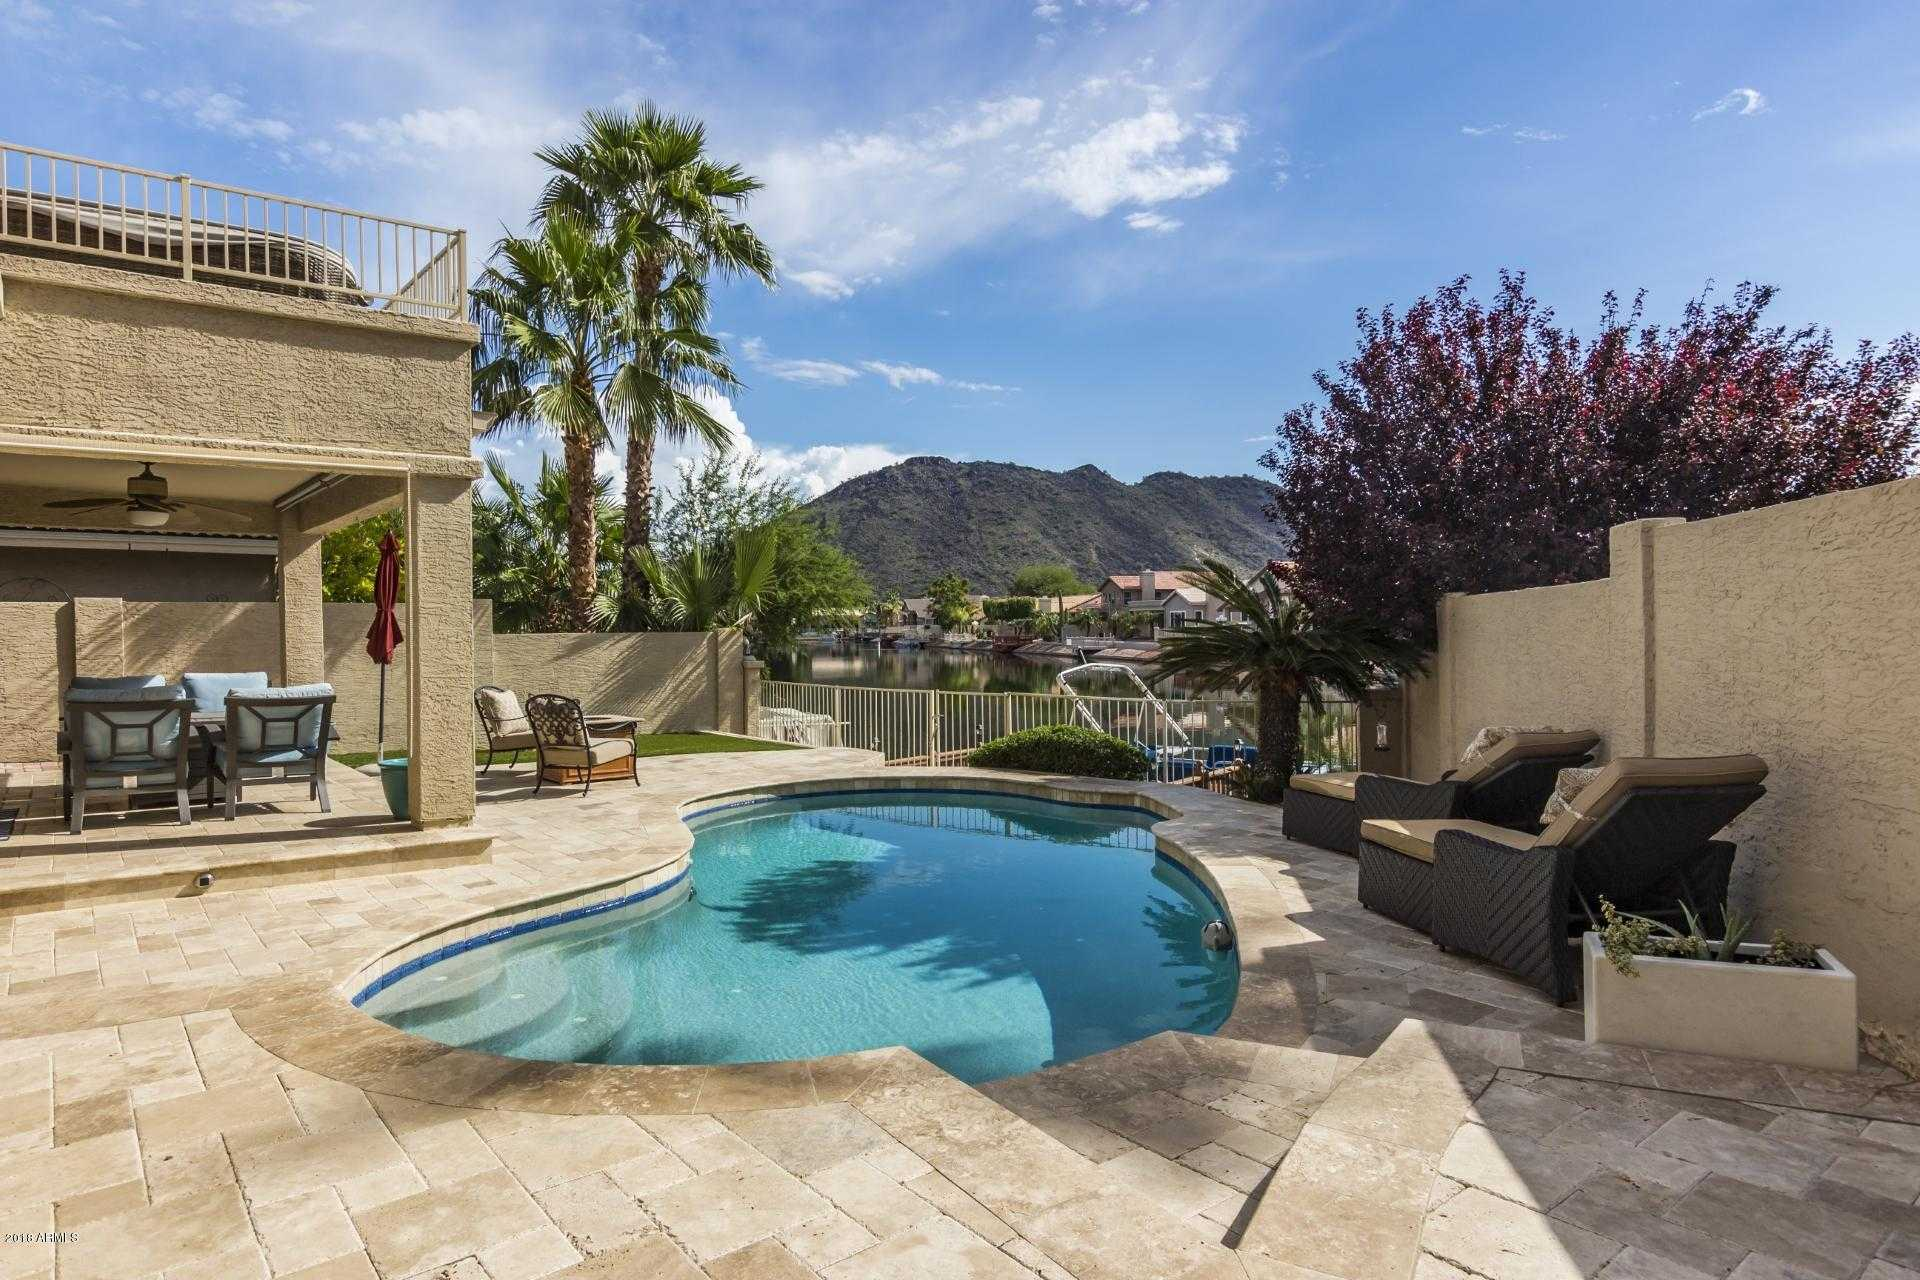 $515,000 - 4Br/3Ba - Home for Sale in Arrowhead Lakes 3 Lot 239-333 Tr A-b, Glendale